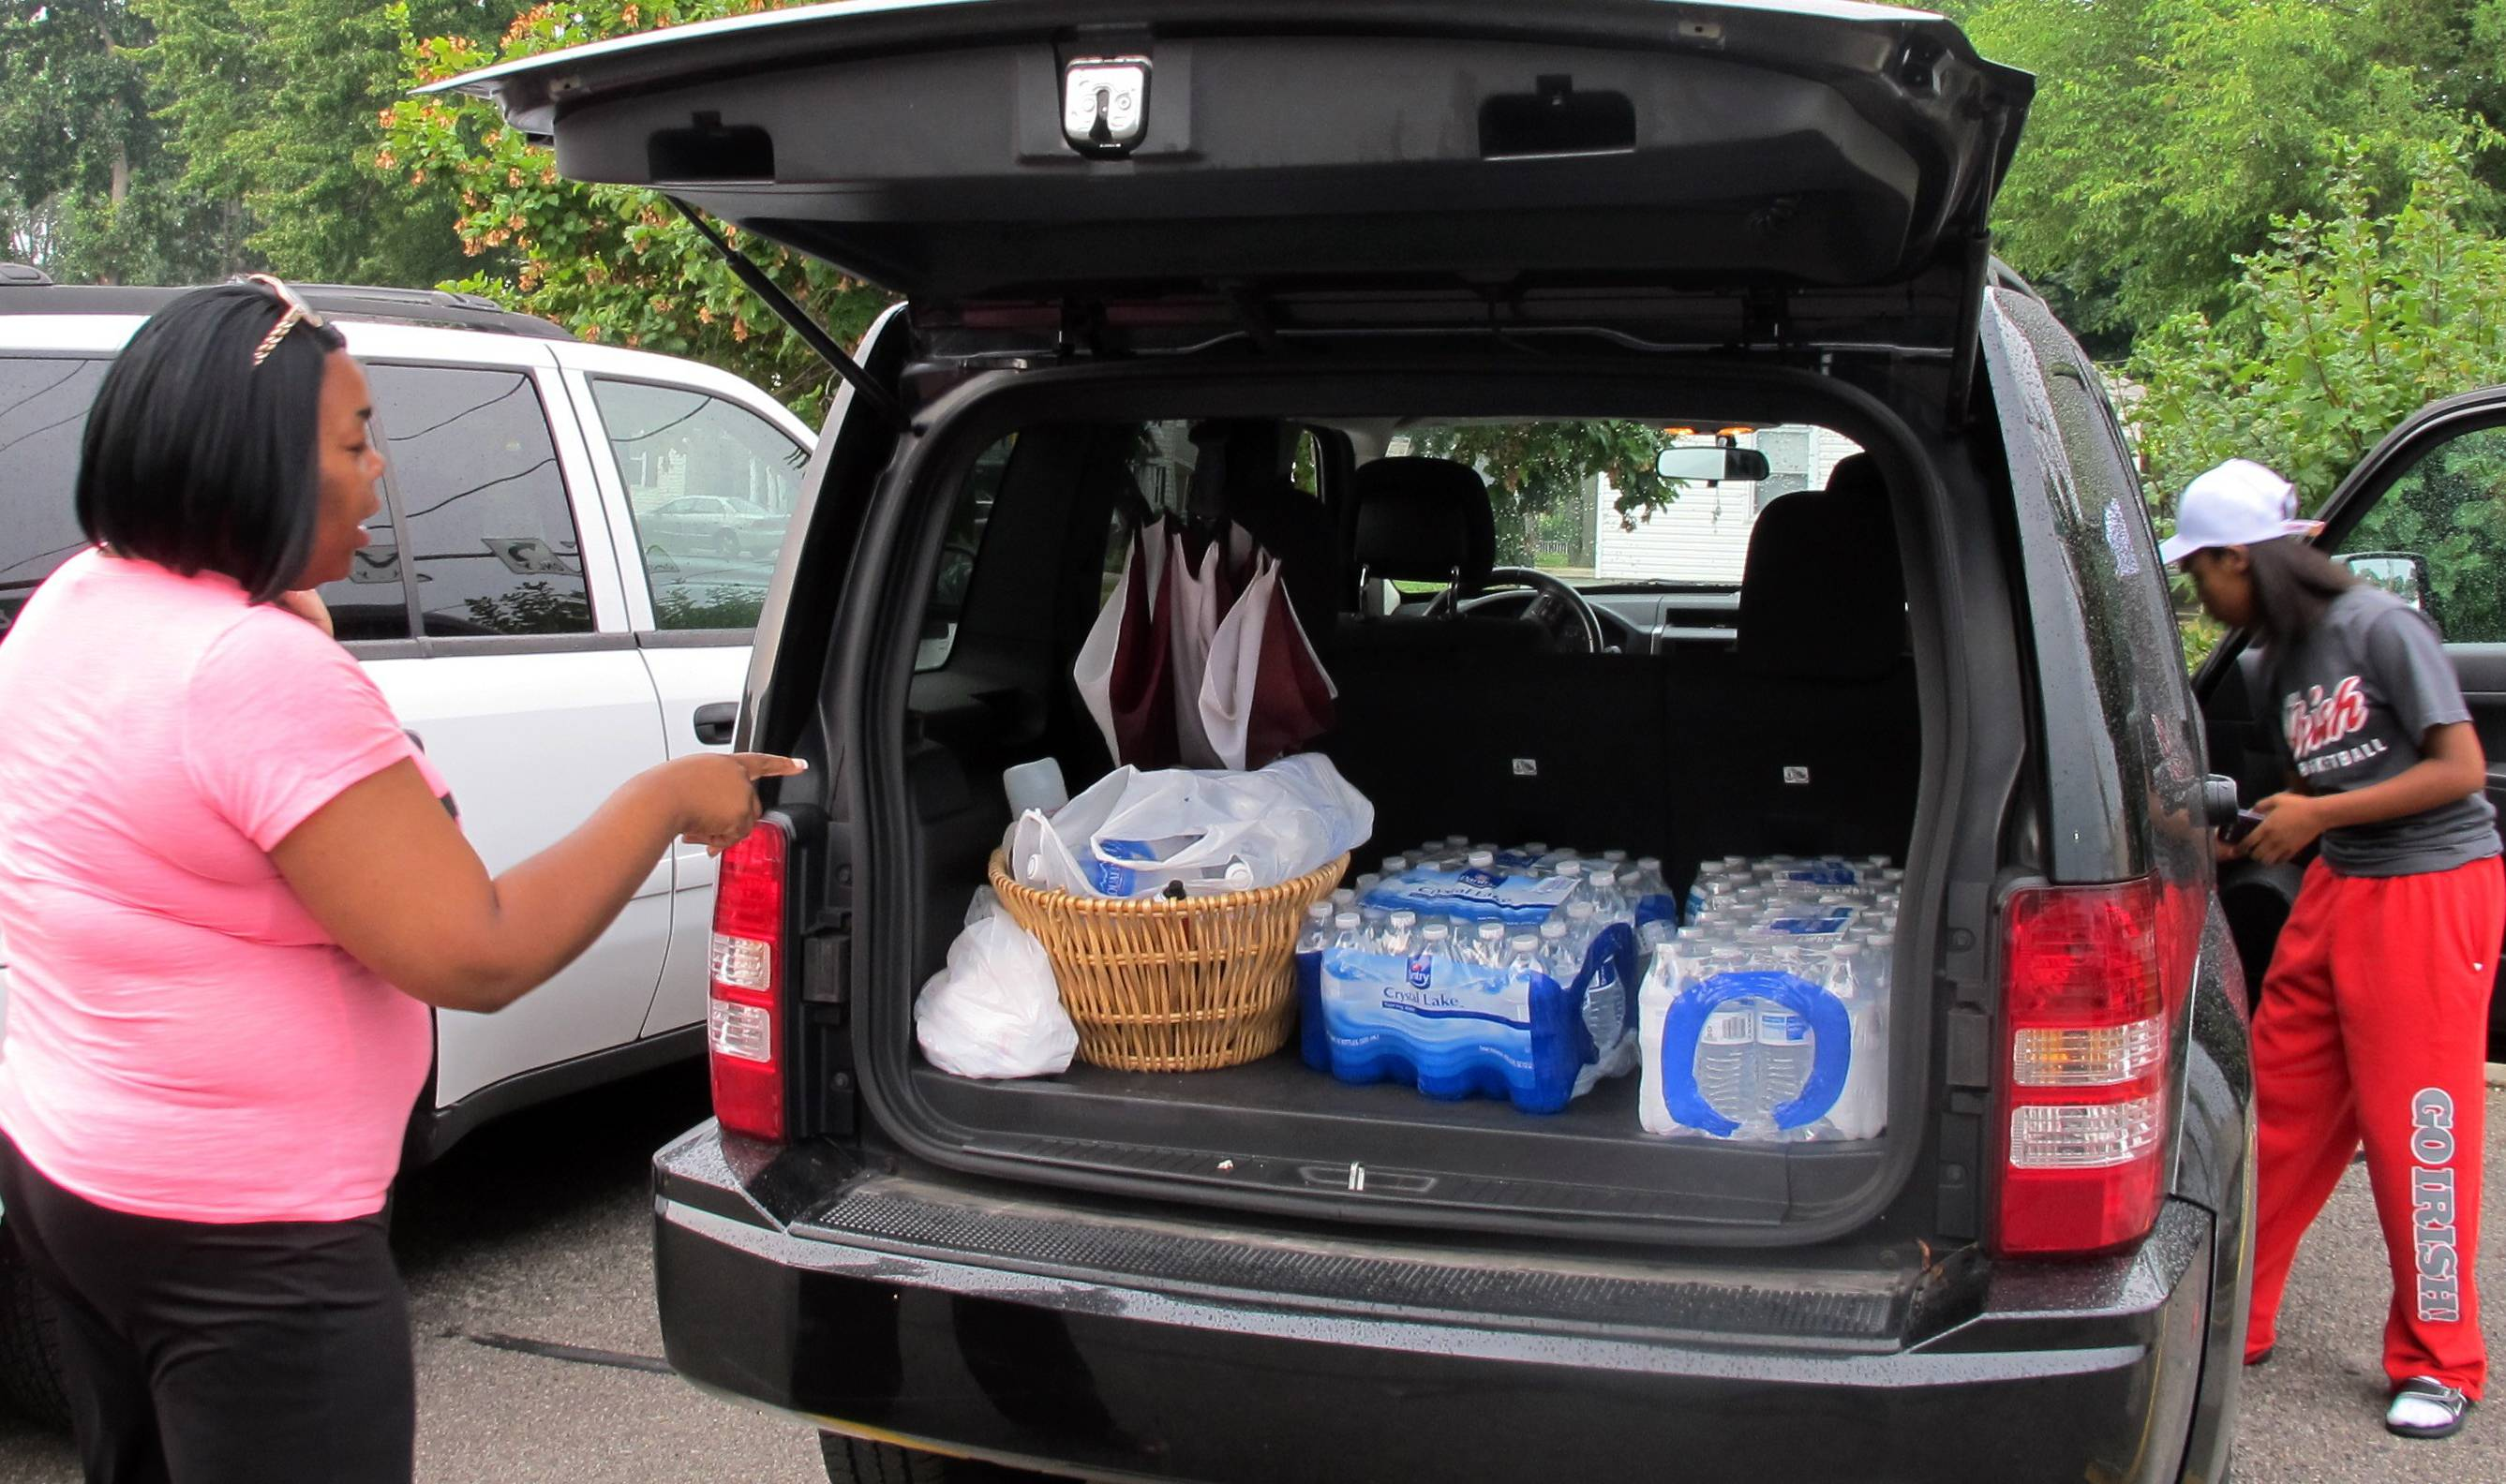 Aundrea Simmons stands next to her minivan Saturday with cases of bottled water she bought after Toledo warned residents not to use its water. About 400,000 people in and around Ohio's fourth-largest city were warned not to drink or use its water after tests revealed the presence of a toxin possibly from algae on Lake Erie.